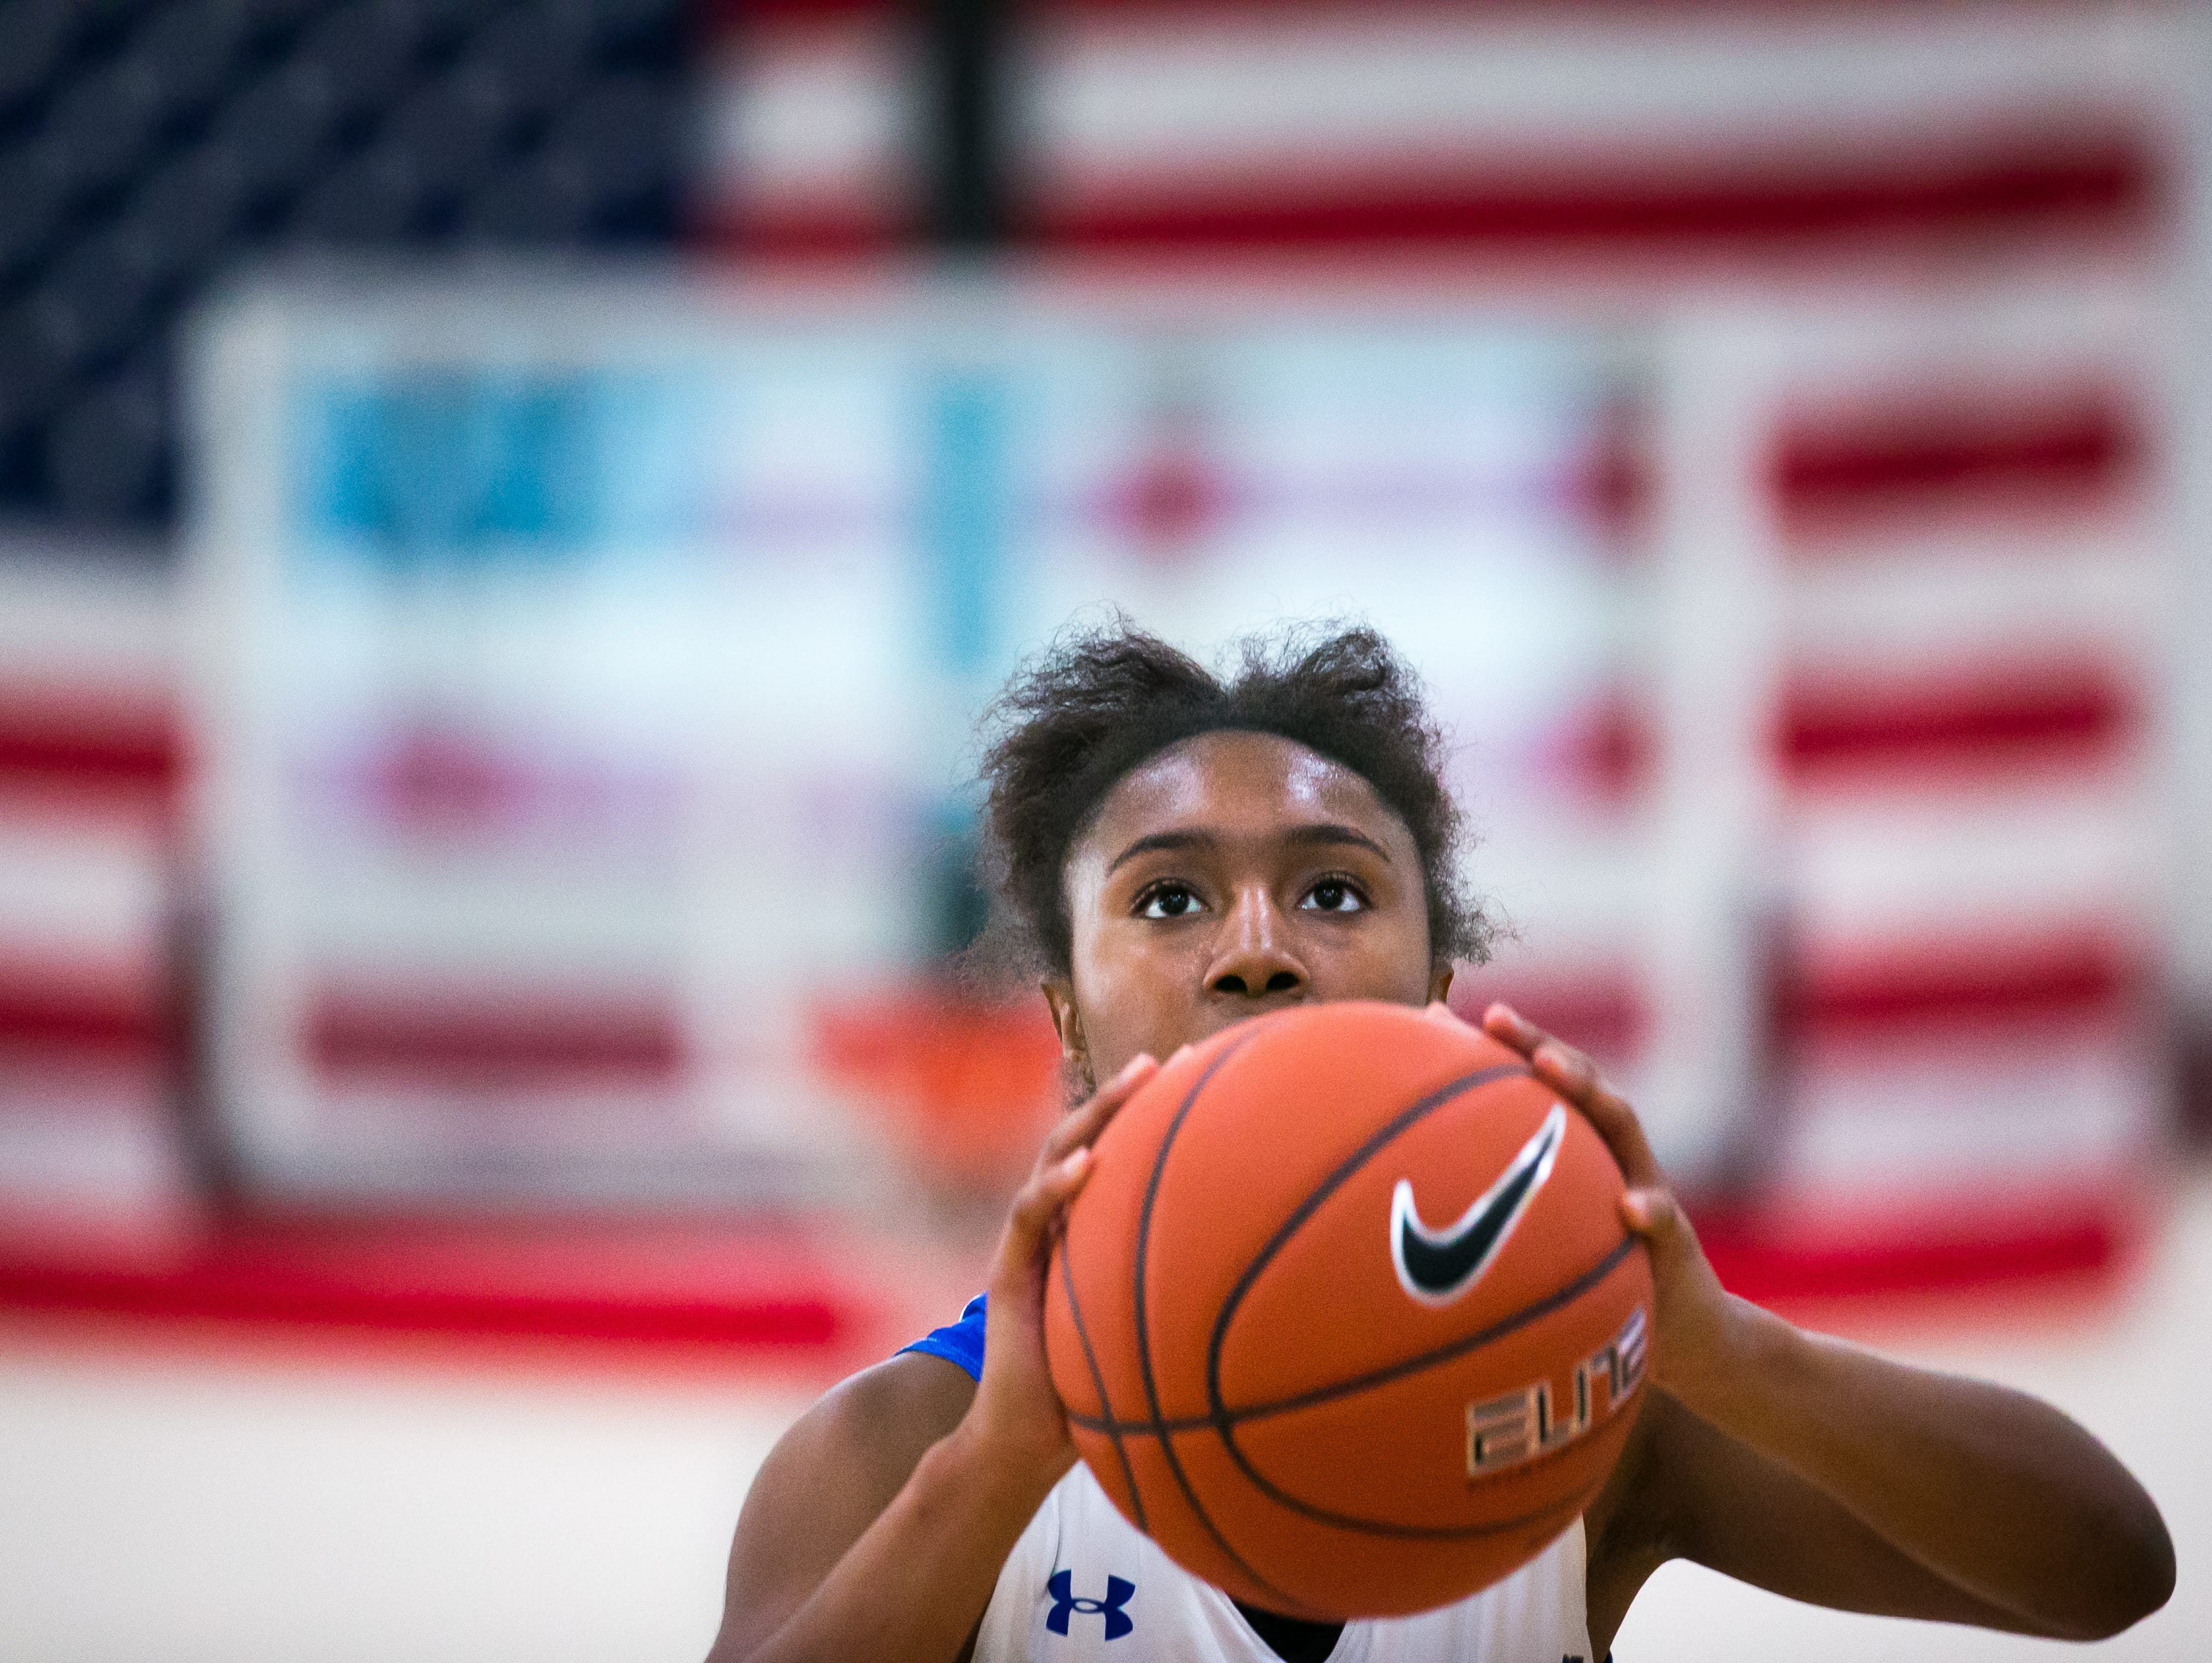 Howard guard Na'Leigha Wright shoots a foul shot against William Penn at the Diamond State Classic. Wright and the Wildcats will host their own girls basketball event - the Howard MLK Showcase - next Monday.